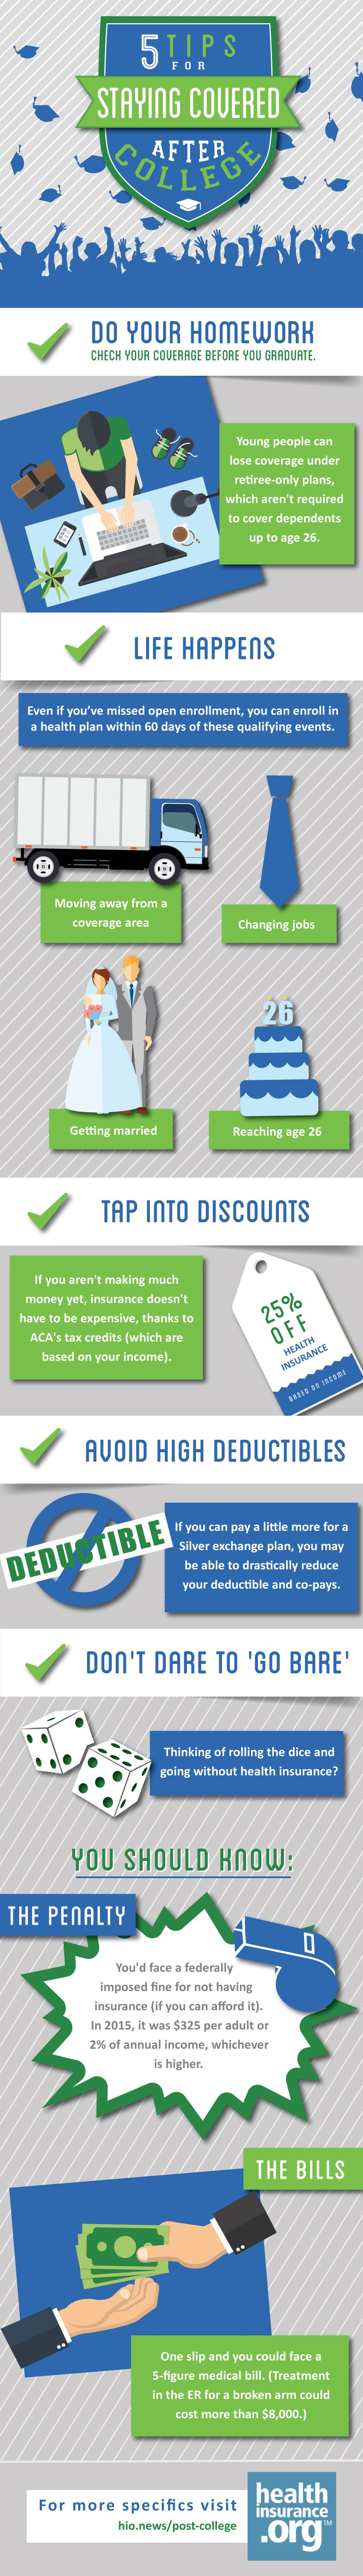 5 Ways To Stay Insured After College Graduation With Images